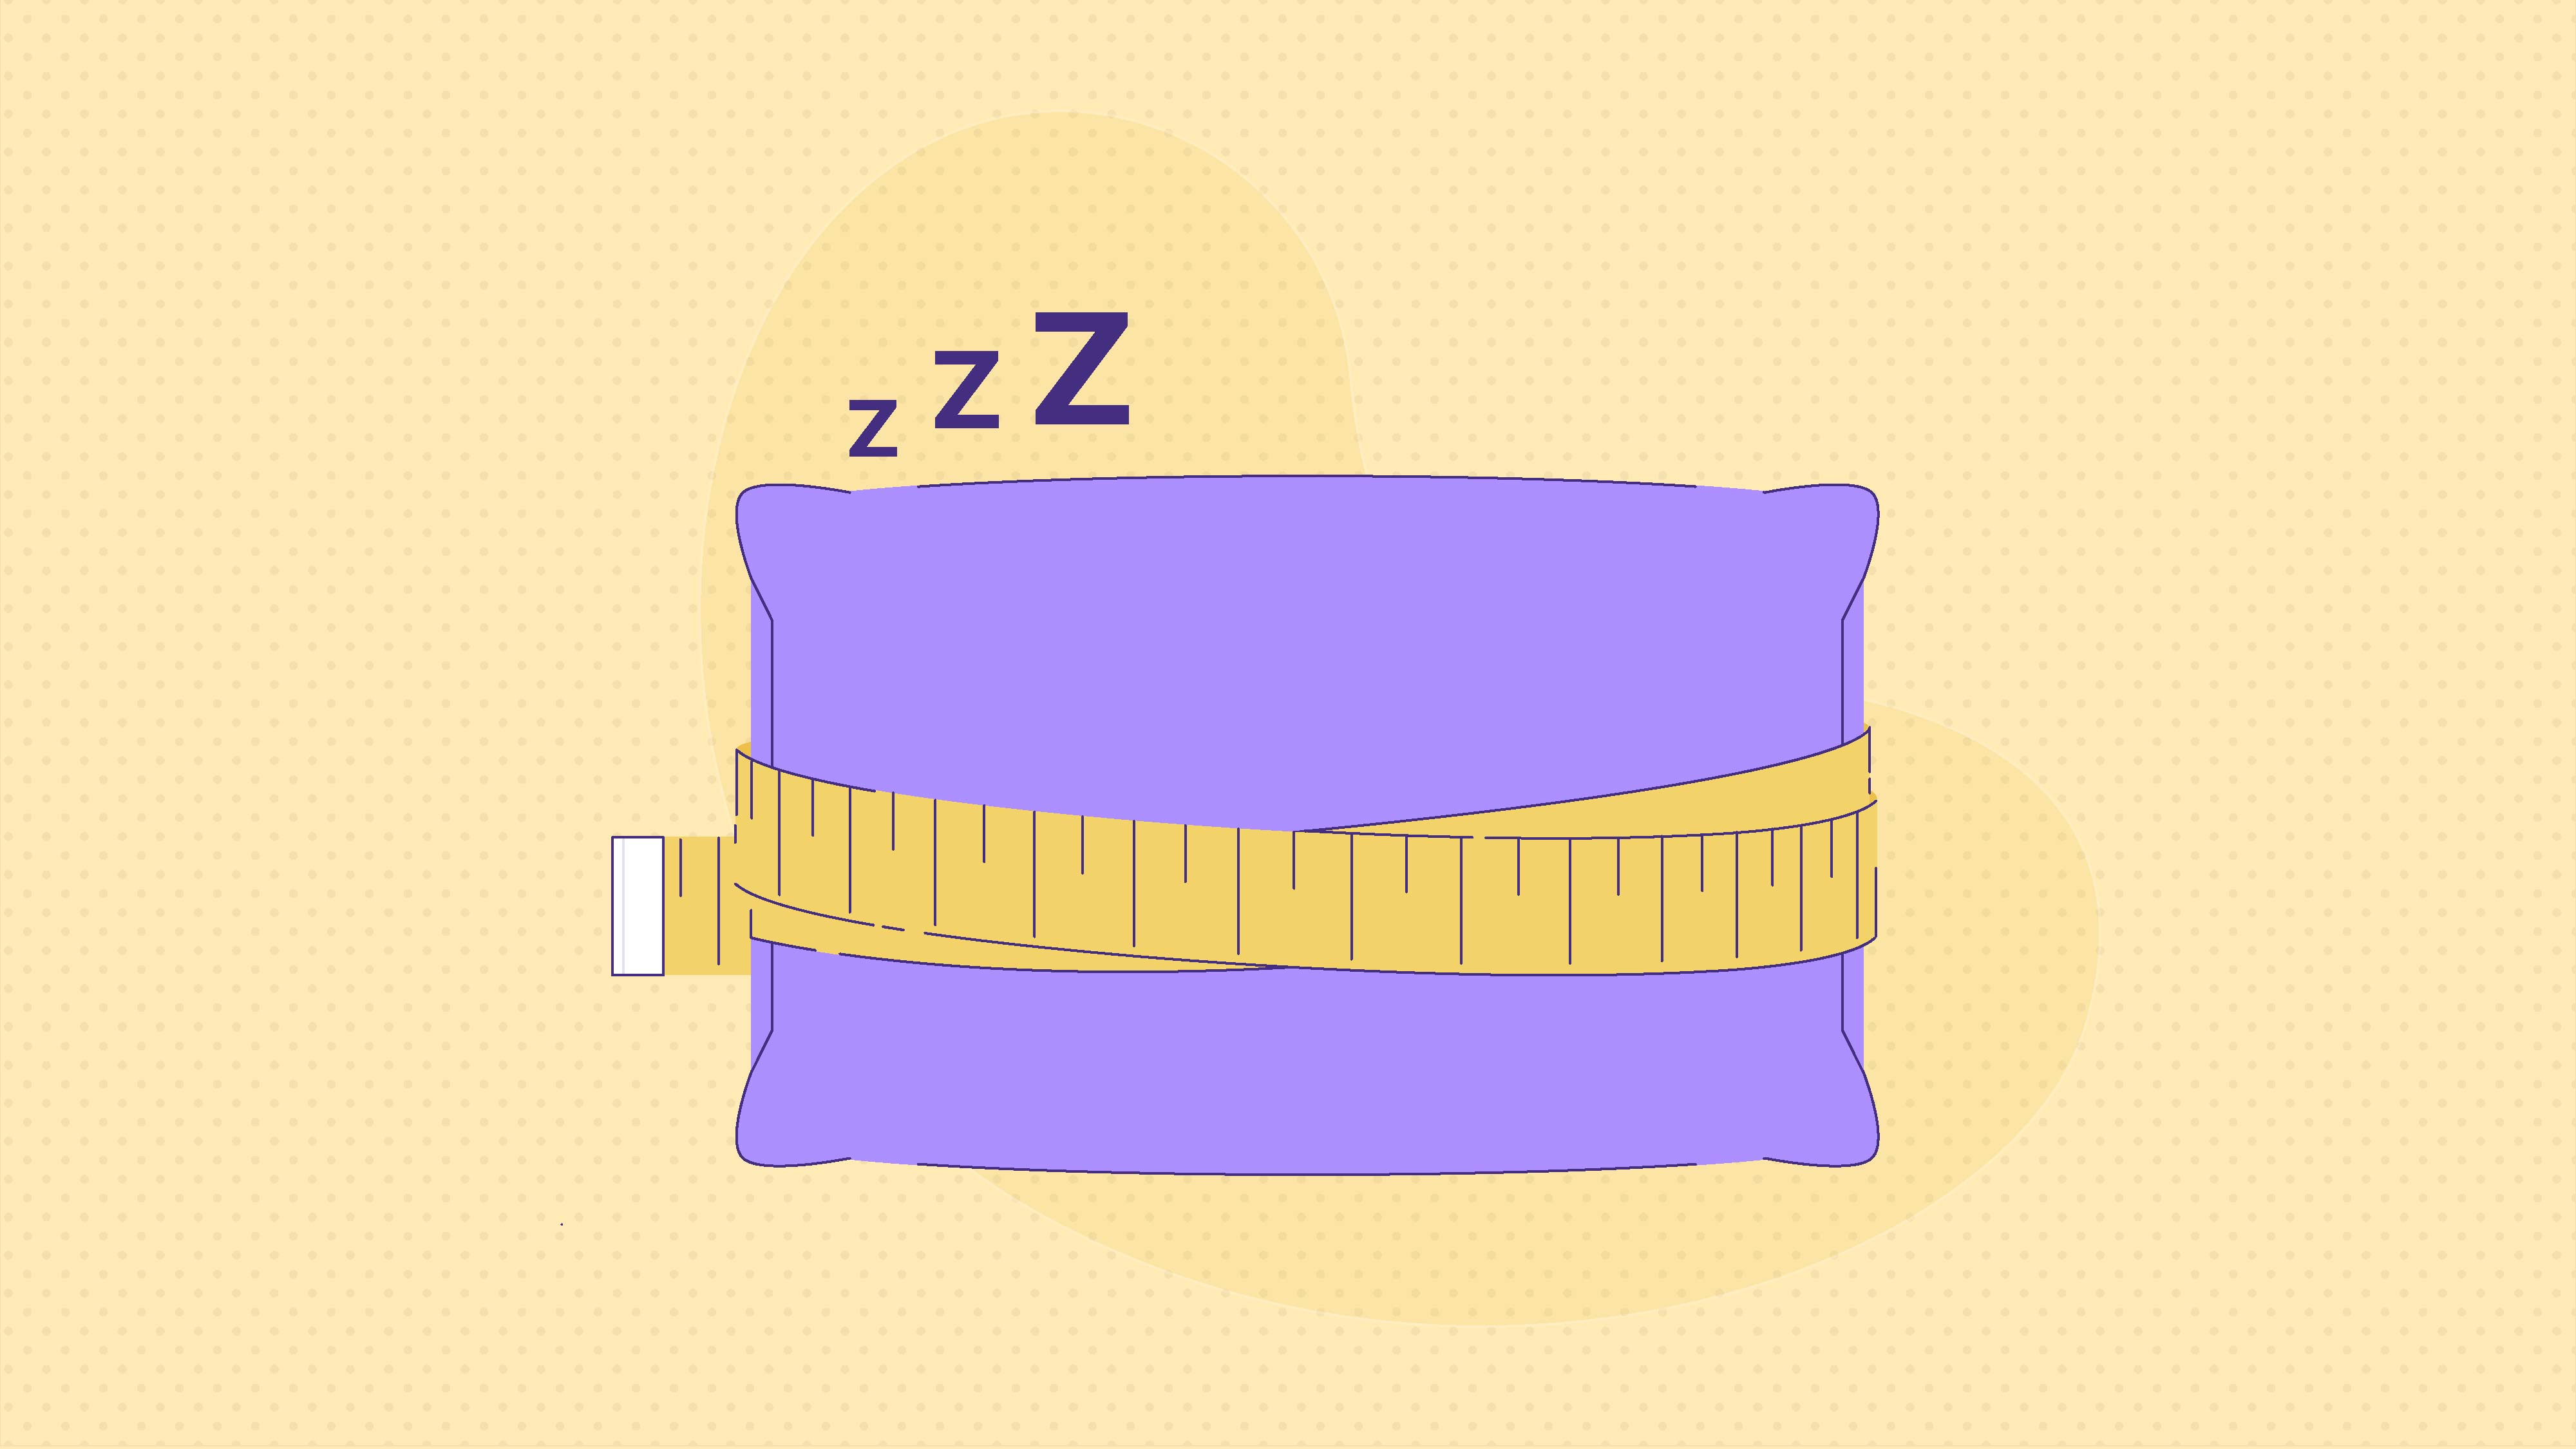 How Many Calories Do You Burn Sleeping?